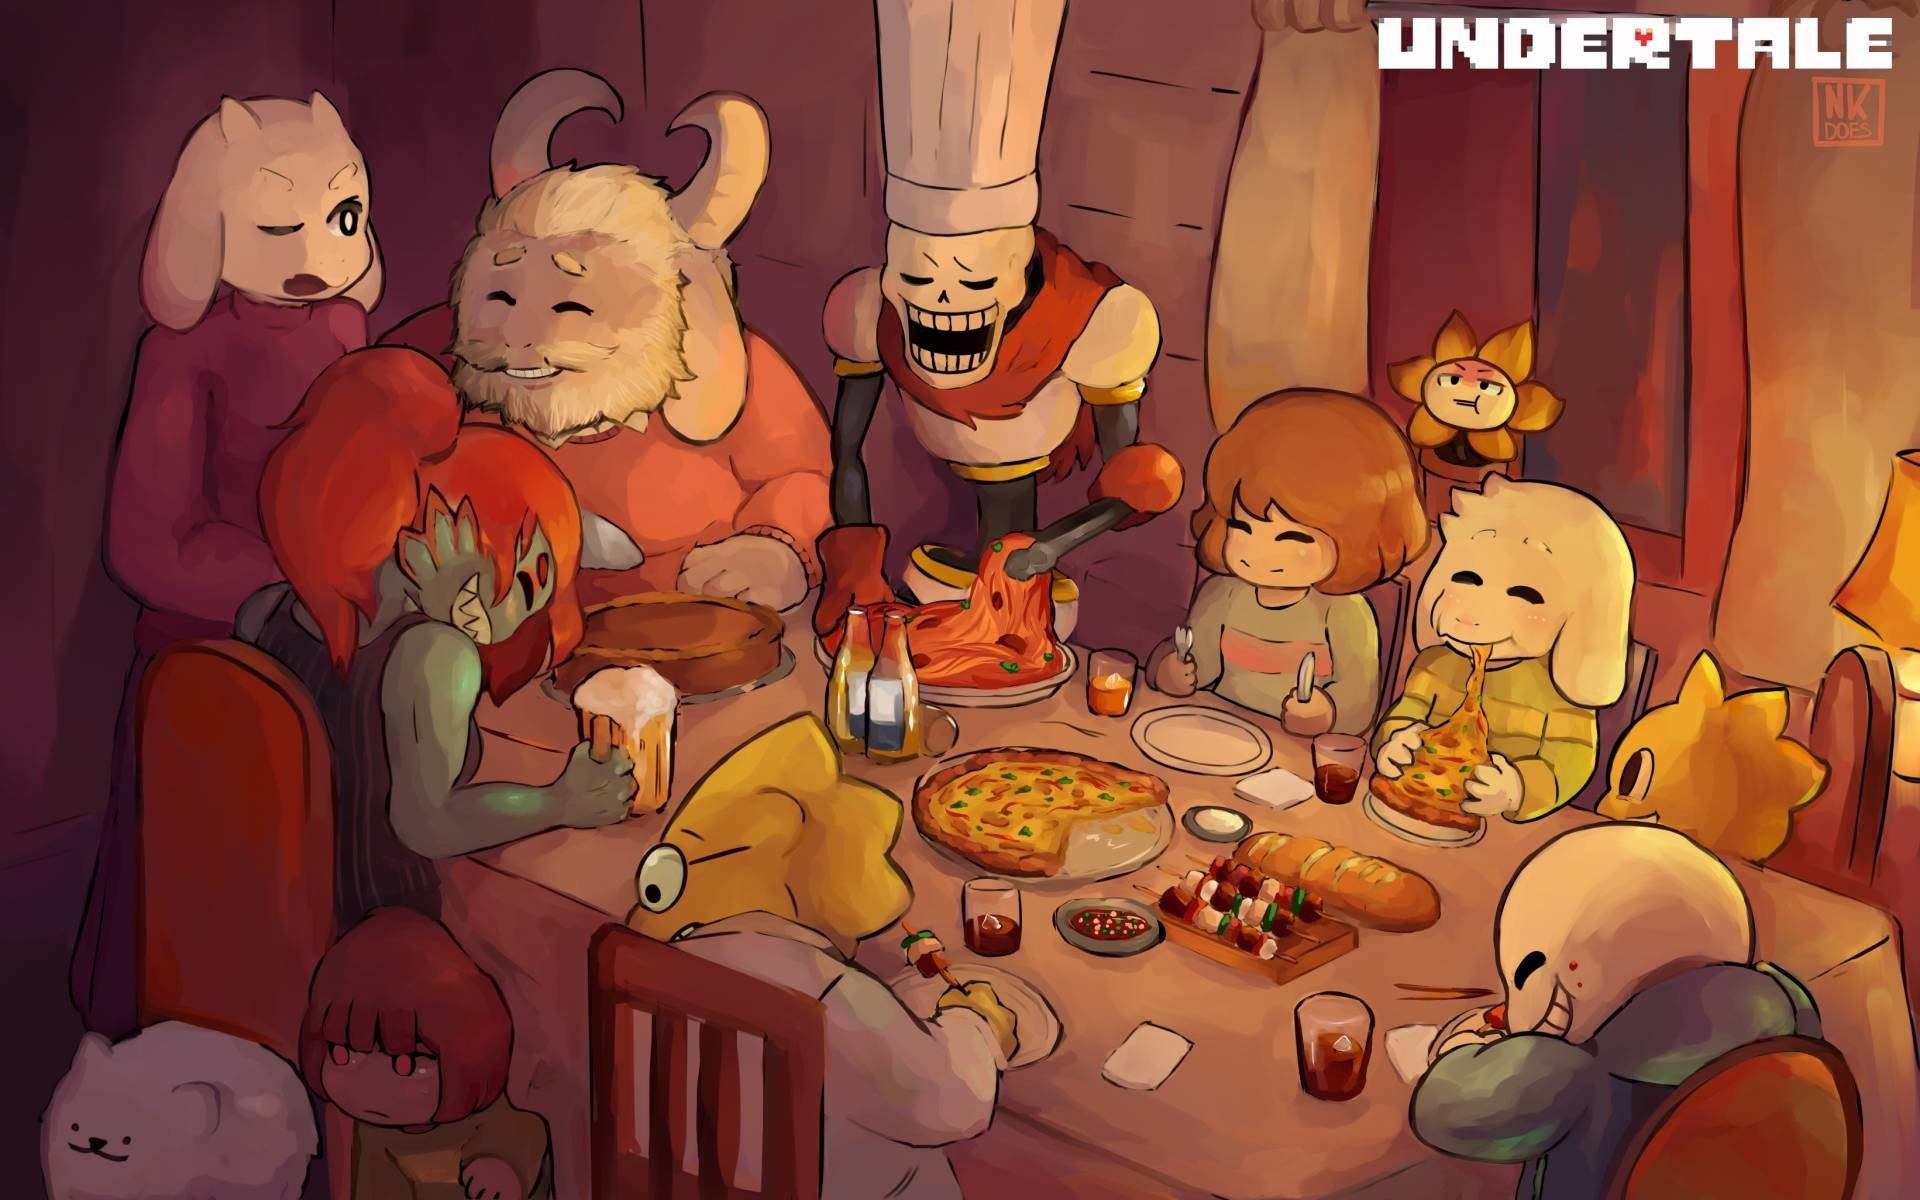 QWH688: Cute Undertale Wallpaper, Awesome Undertale Backgrounds .